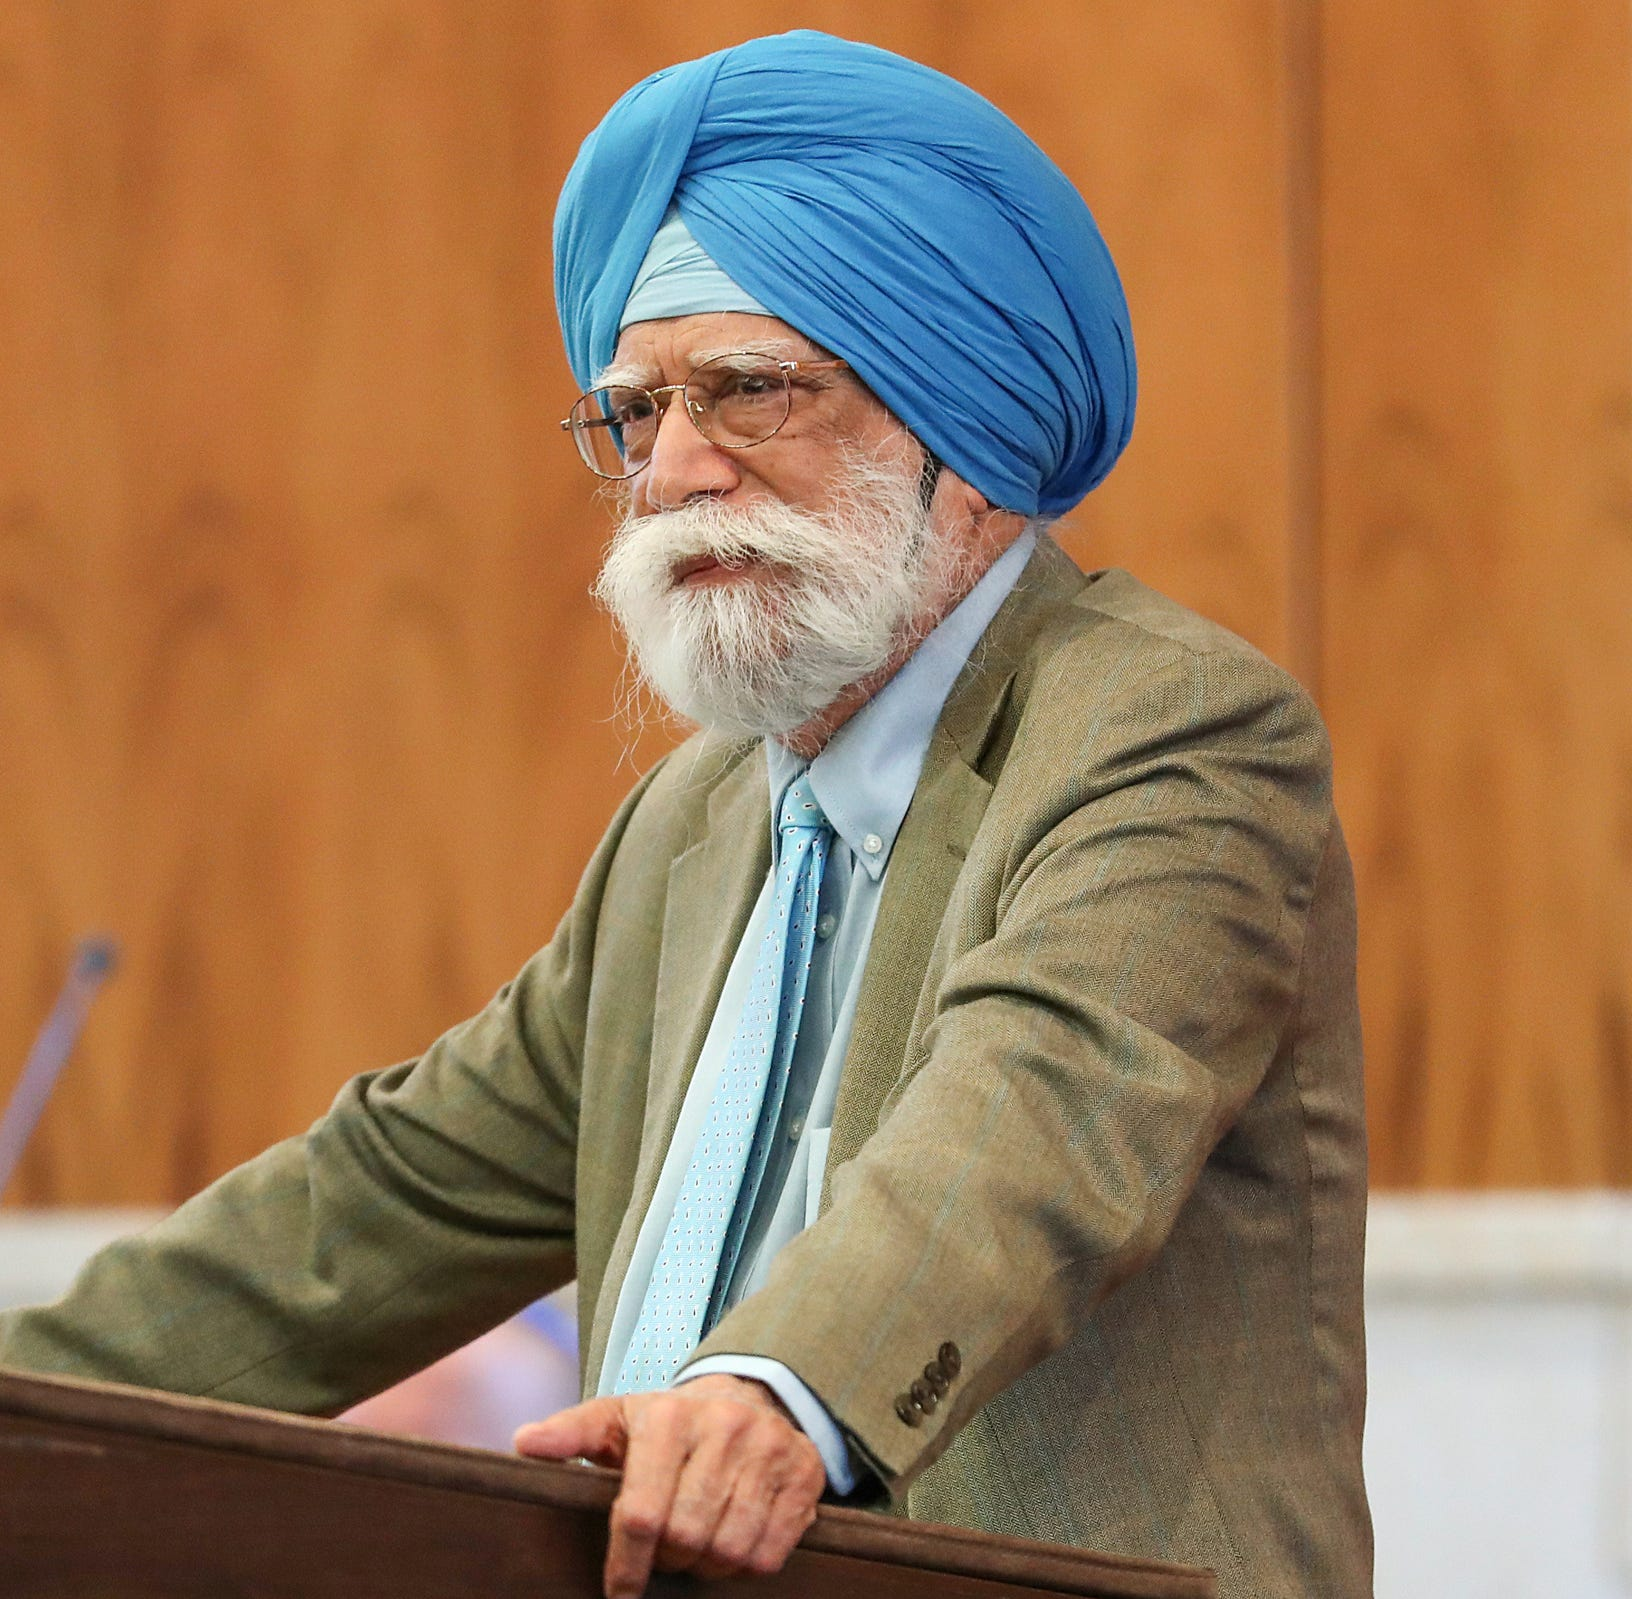 Letter: 'Turban man' insult cuts deeply for Sikhs